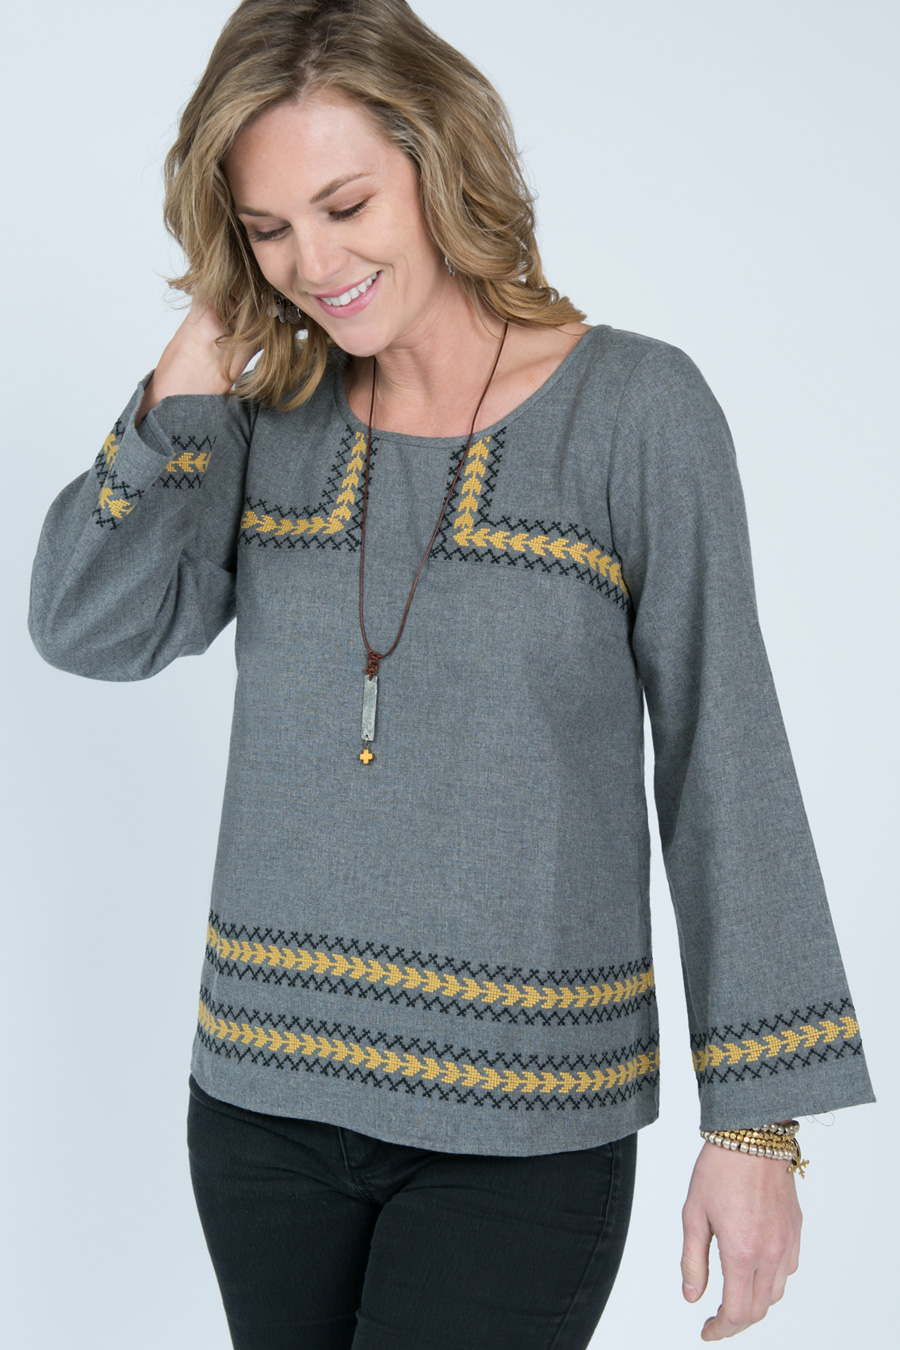 Ivy-Jane-Top-Style-621211-Fall-1-2018-lo